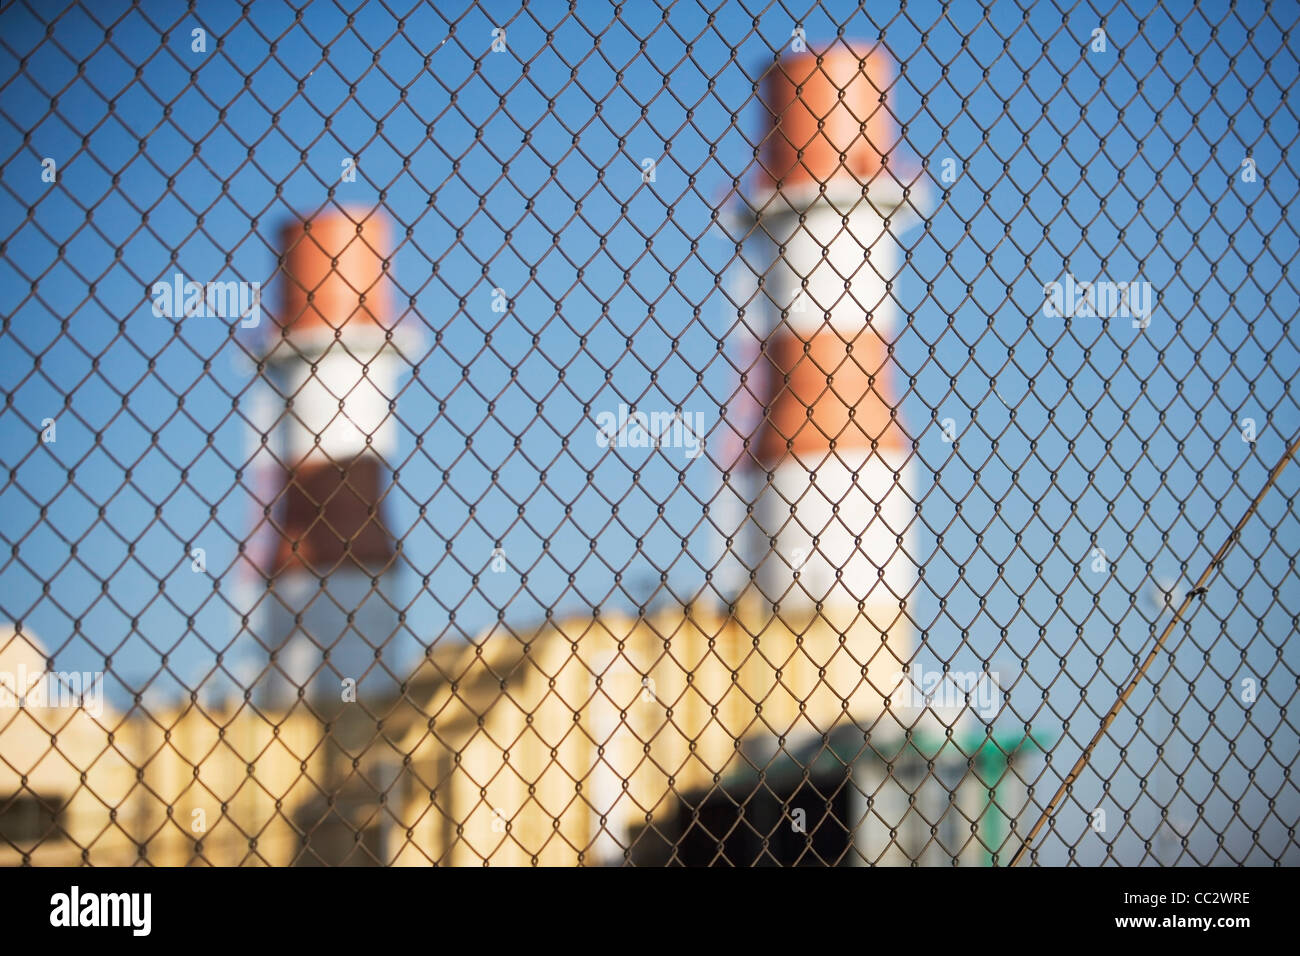 USA, New York City, Industrial plant behind wire mesh fence Stock Photo